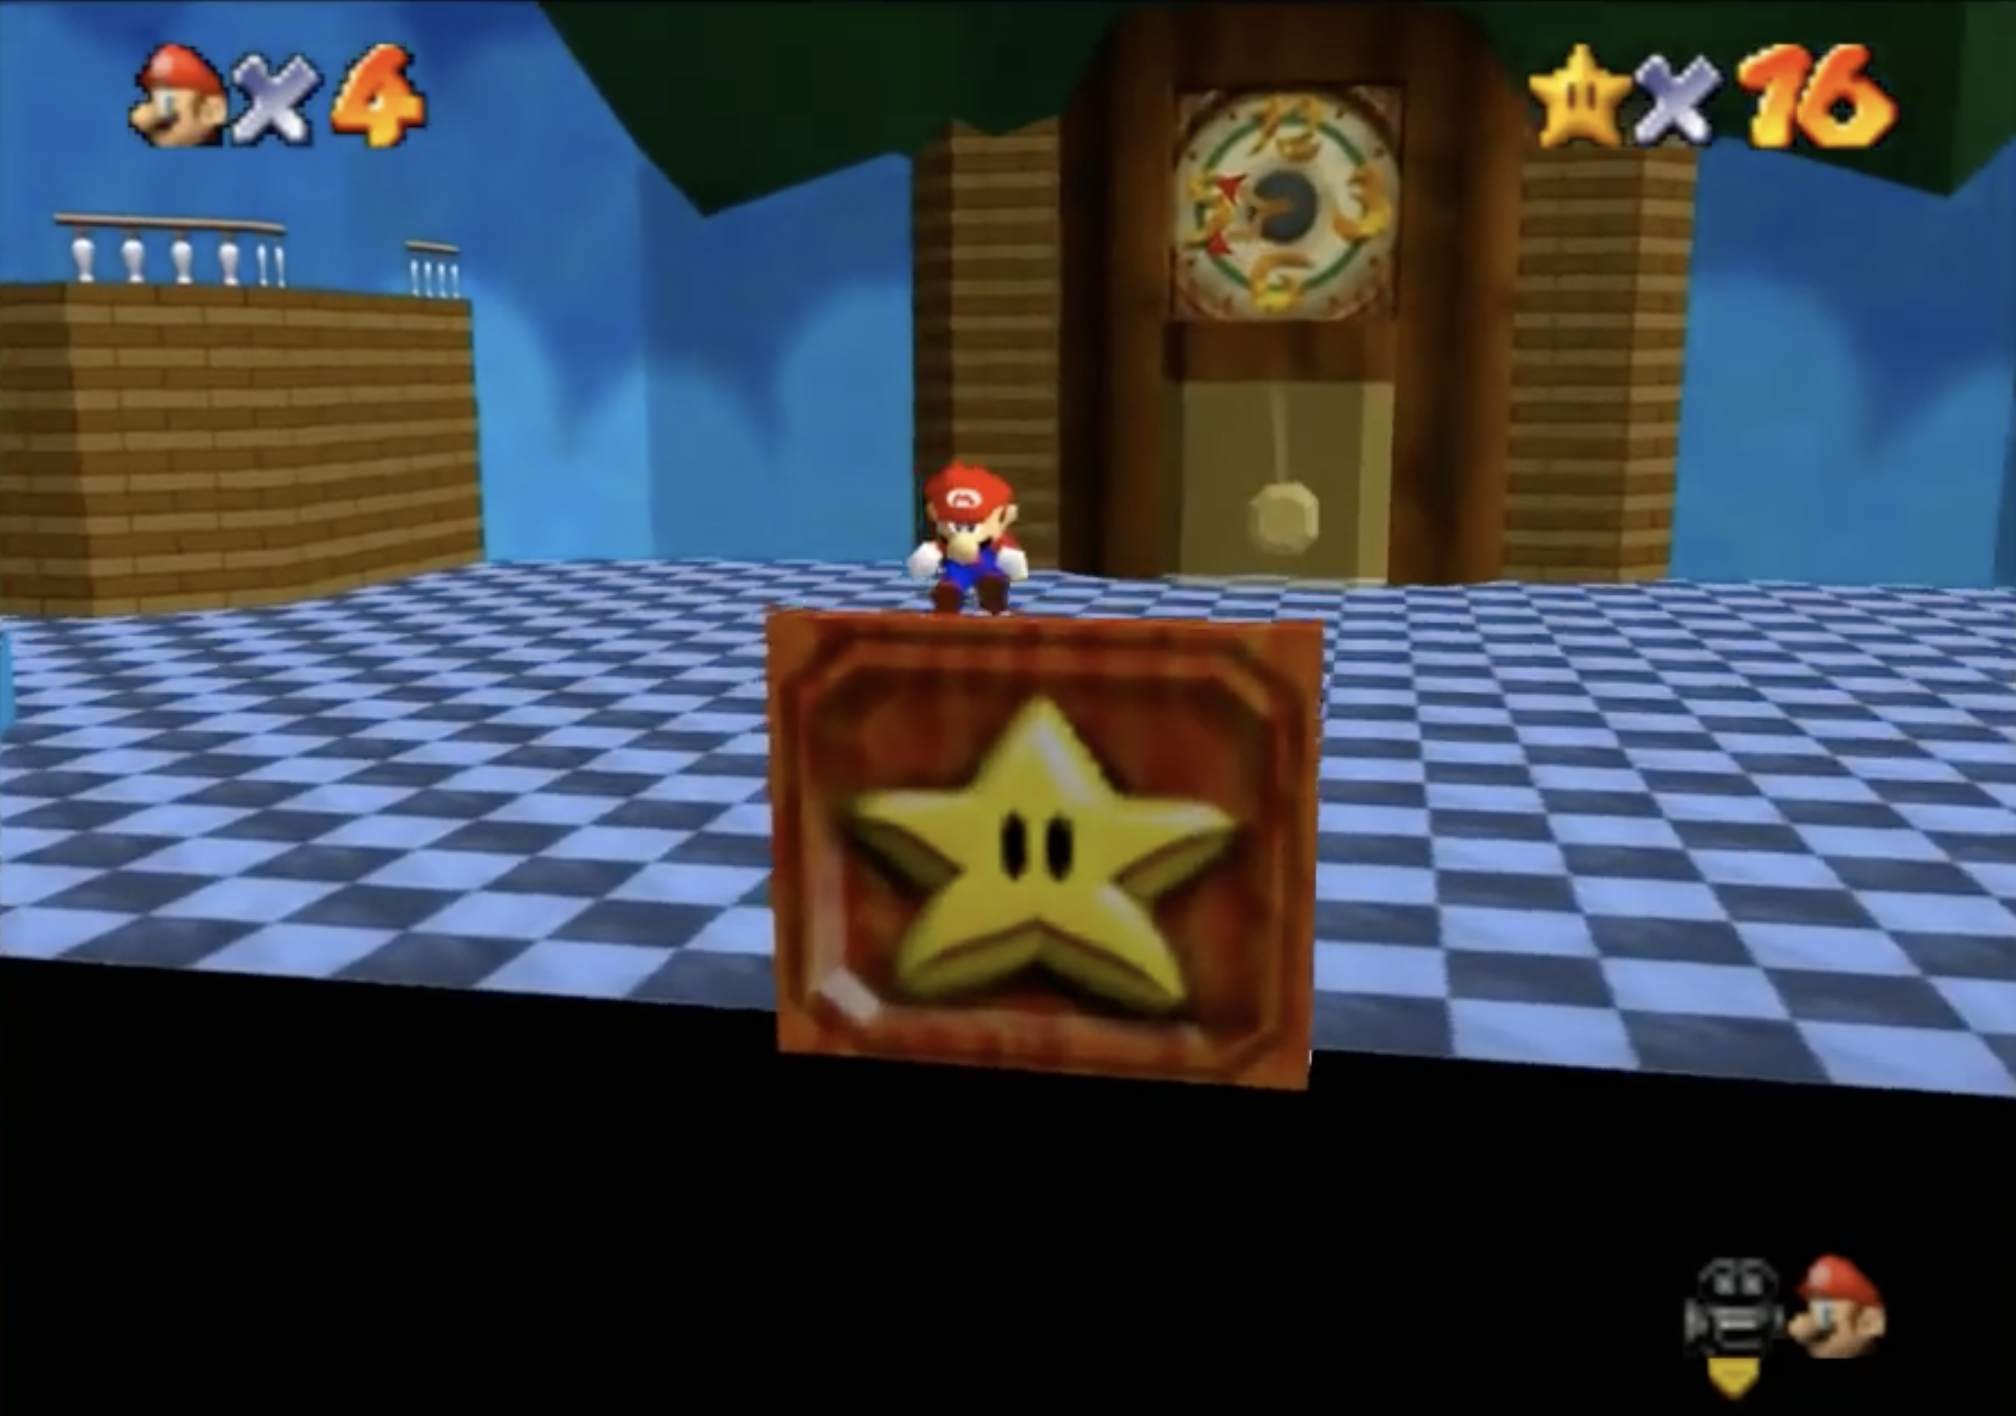 Fate il cavolo di BLJ. Super Mario 3D All-Stars